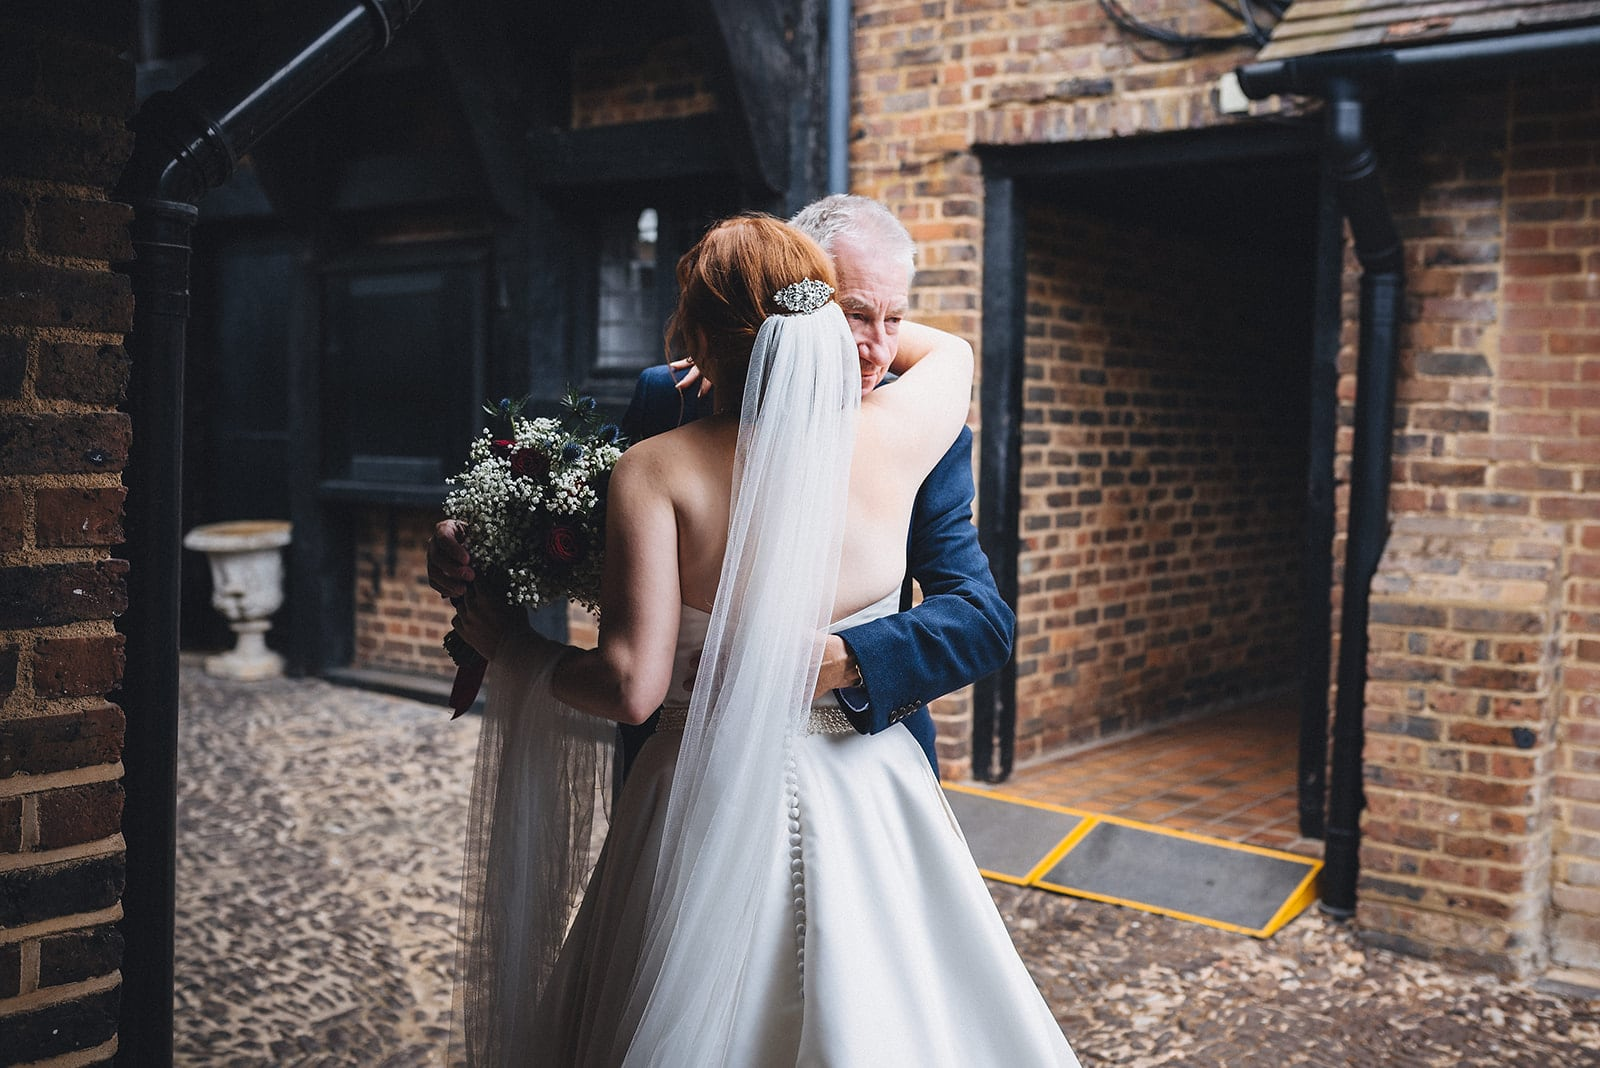 Bride and the father of the bride hug as he sees her for the first time